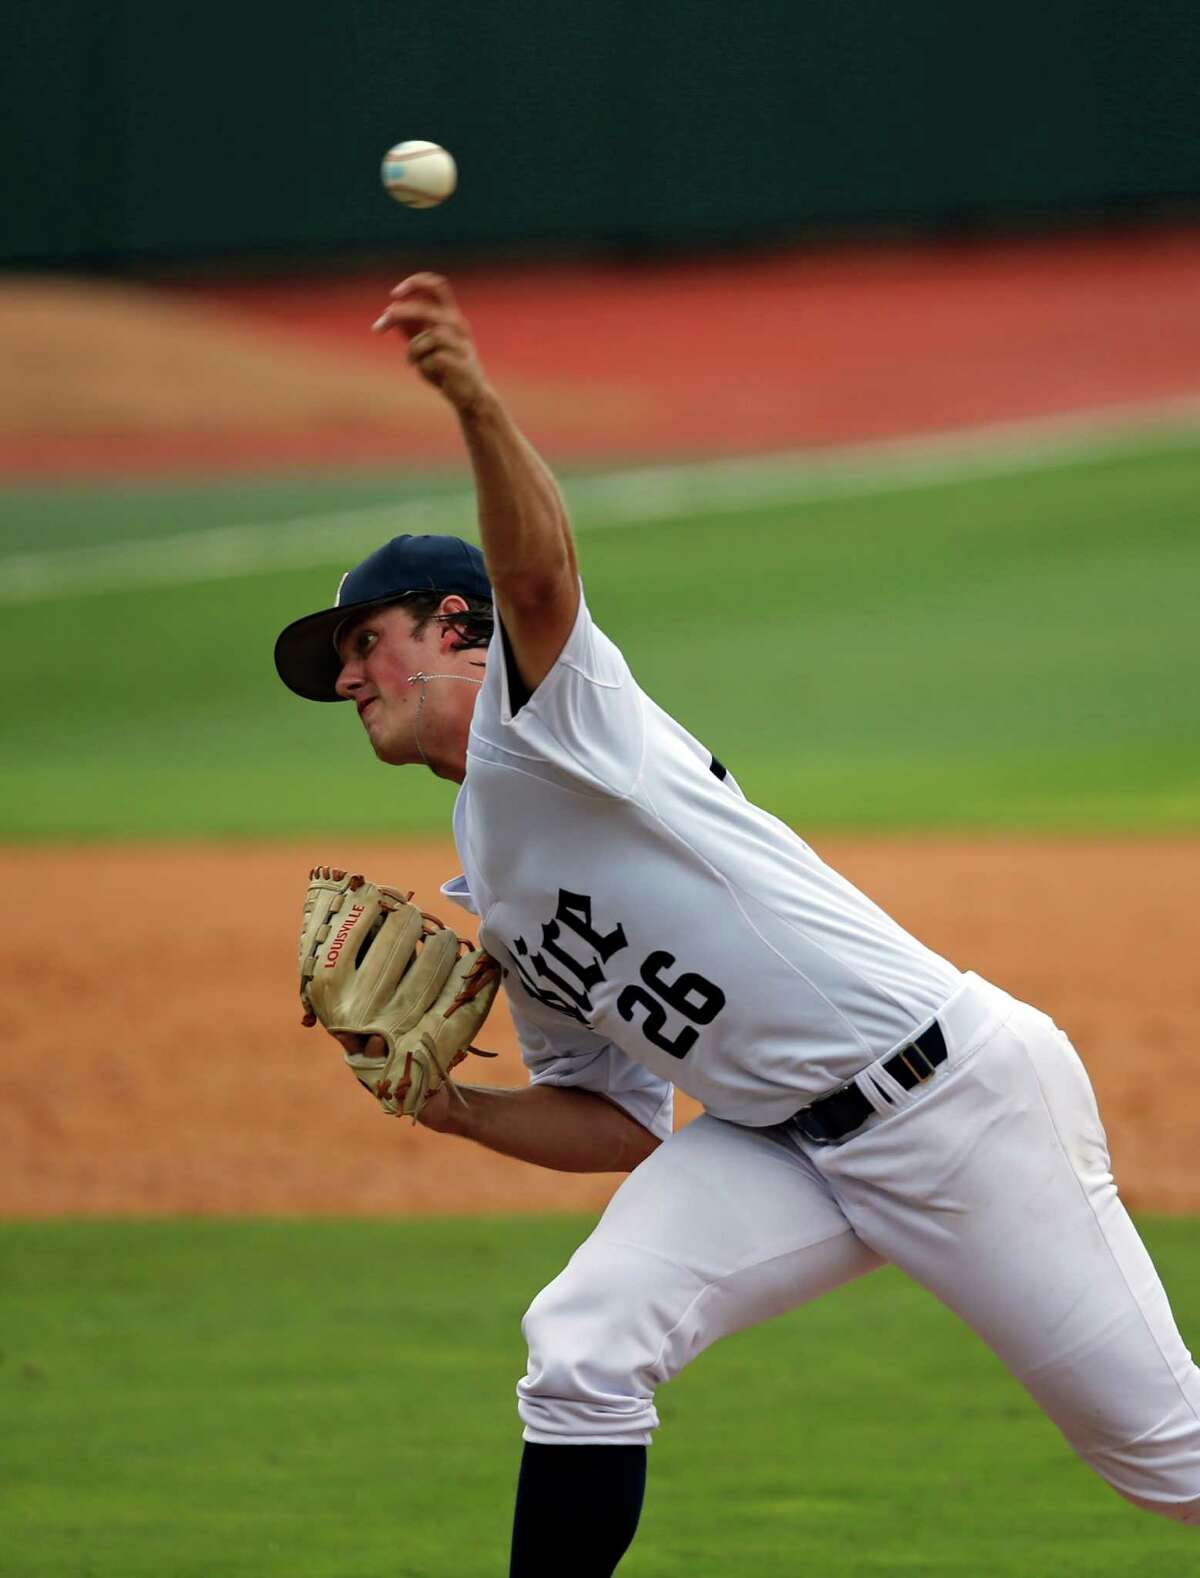 Rice's Blake Fox pitches in the fourth inning of an NCAA college regional baseball game against the Southeastern Louisiana in Baton Rouge, La., Saturday, June 4, 2016. (AP Photo/Gerald Herbert)